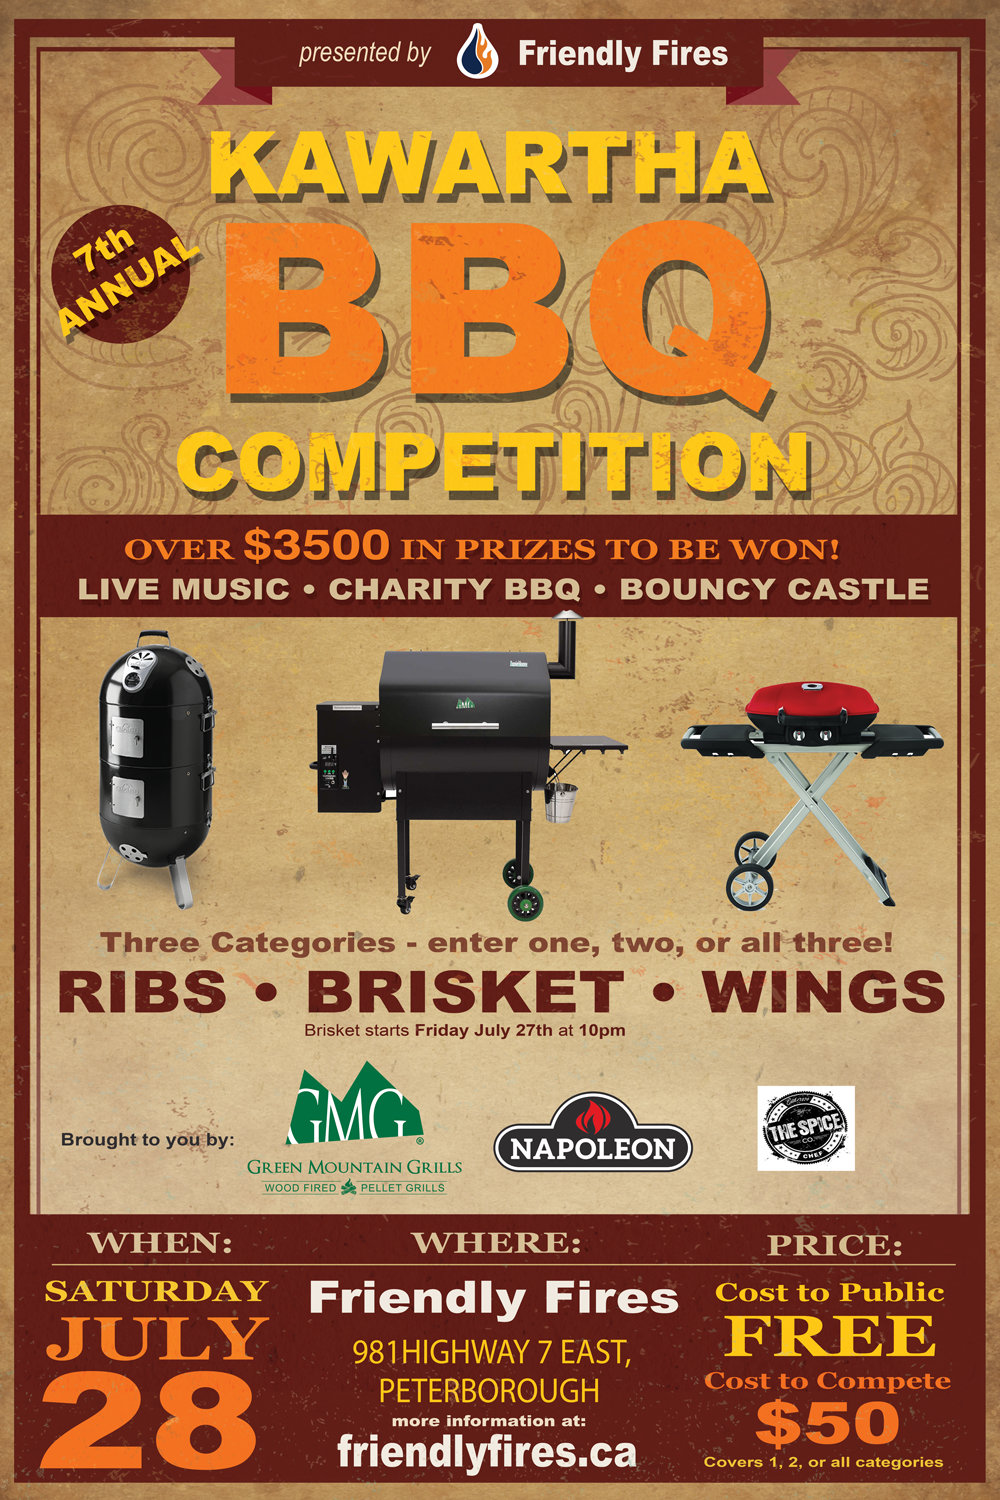 ptbo-bbq-competition.jpg